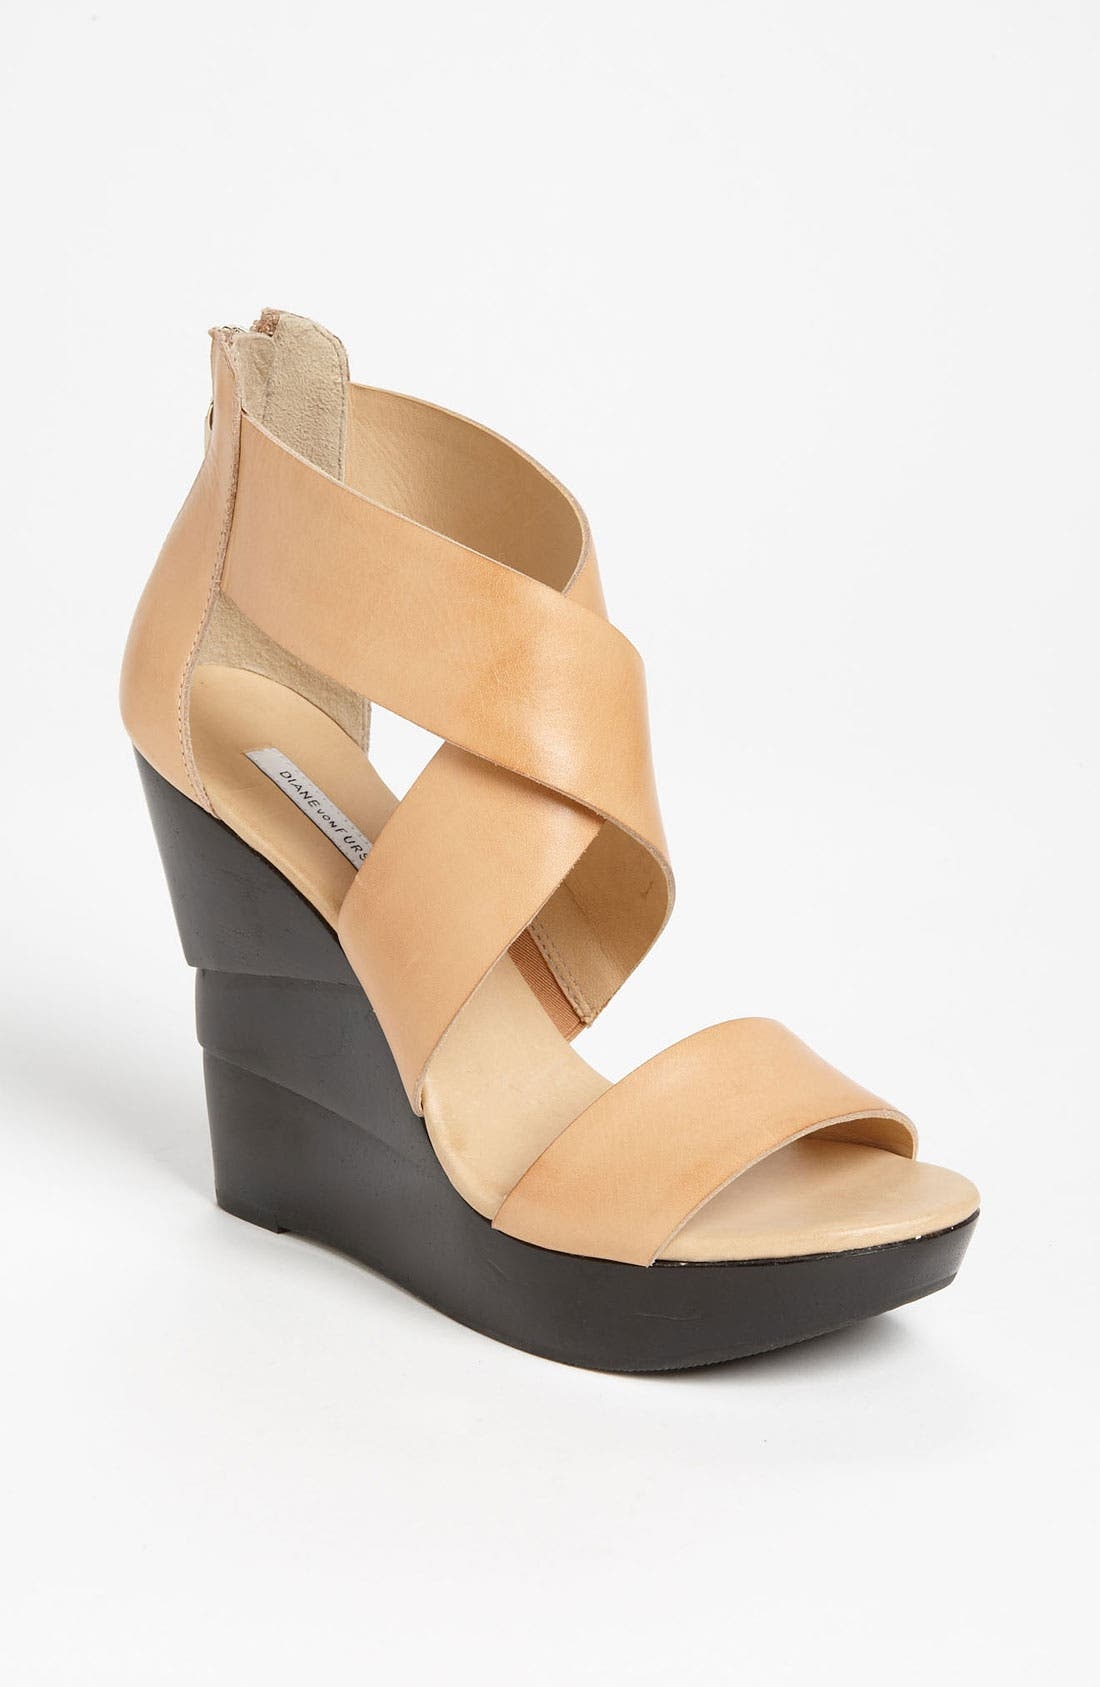 Alternate Image 1 Selected - Diane von Furstenberg 'Opal' Wedge Sandal